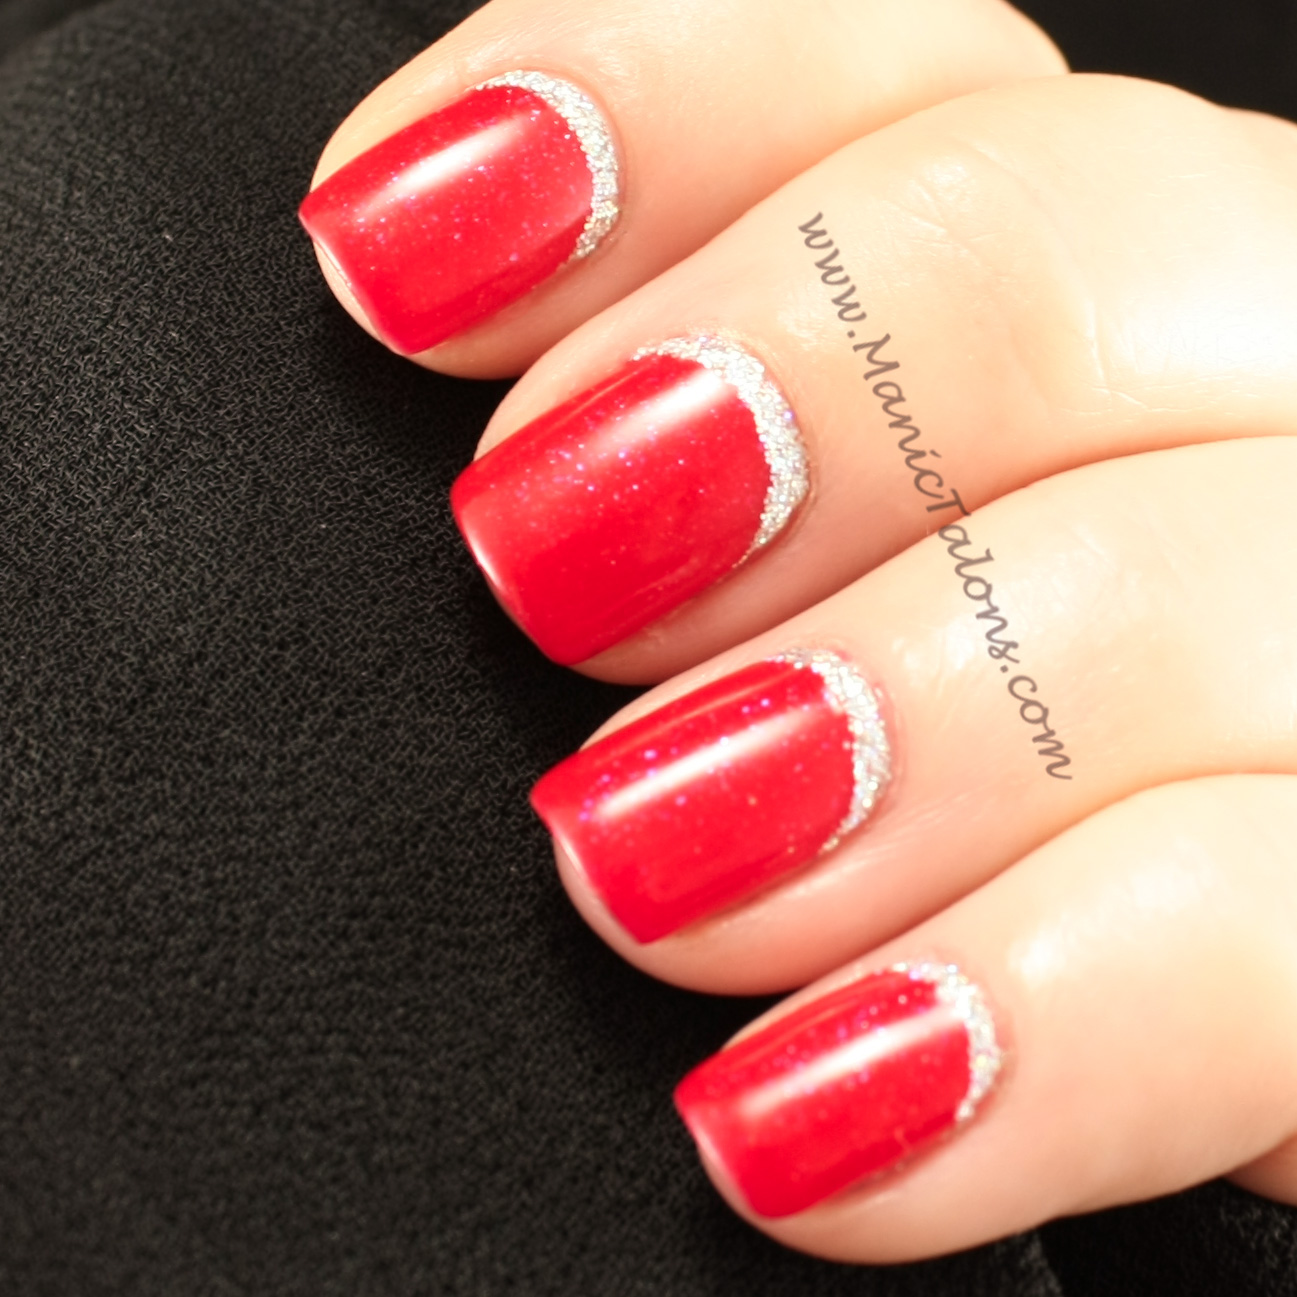 Manic talons nail design glittery ruffian holiday nails couture gel nail polish red carpet prinsesfo Images